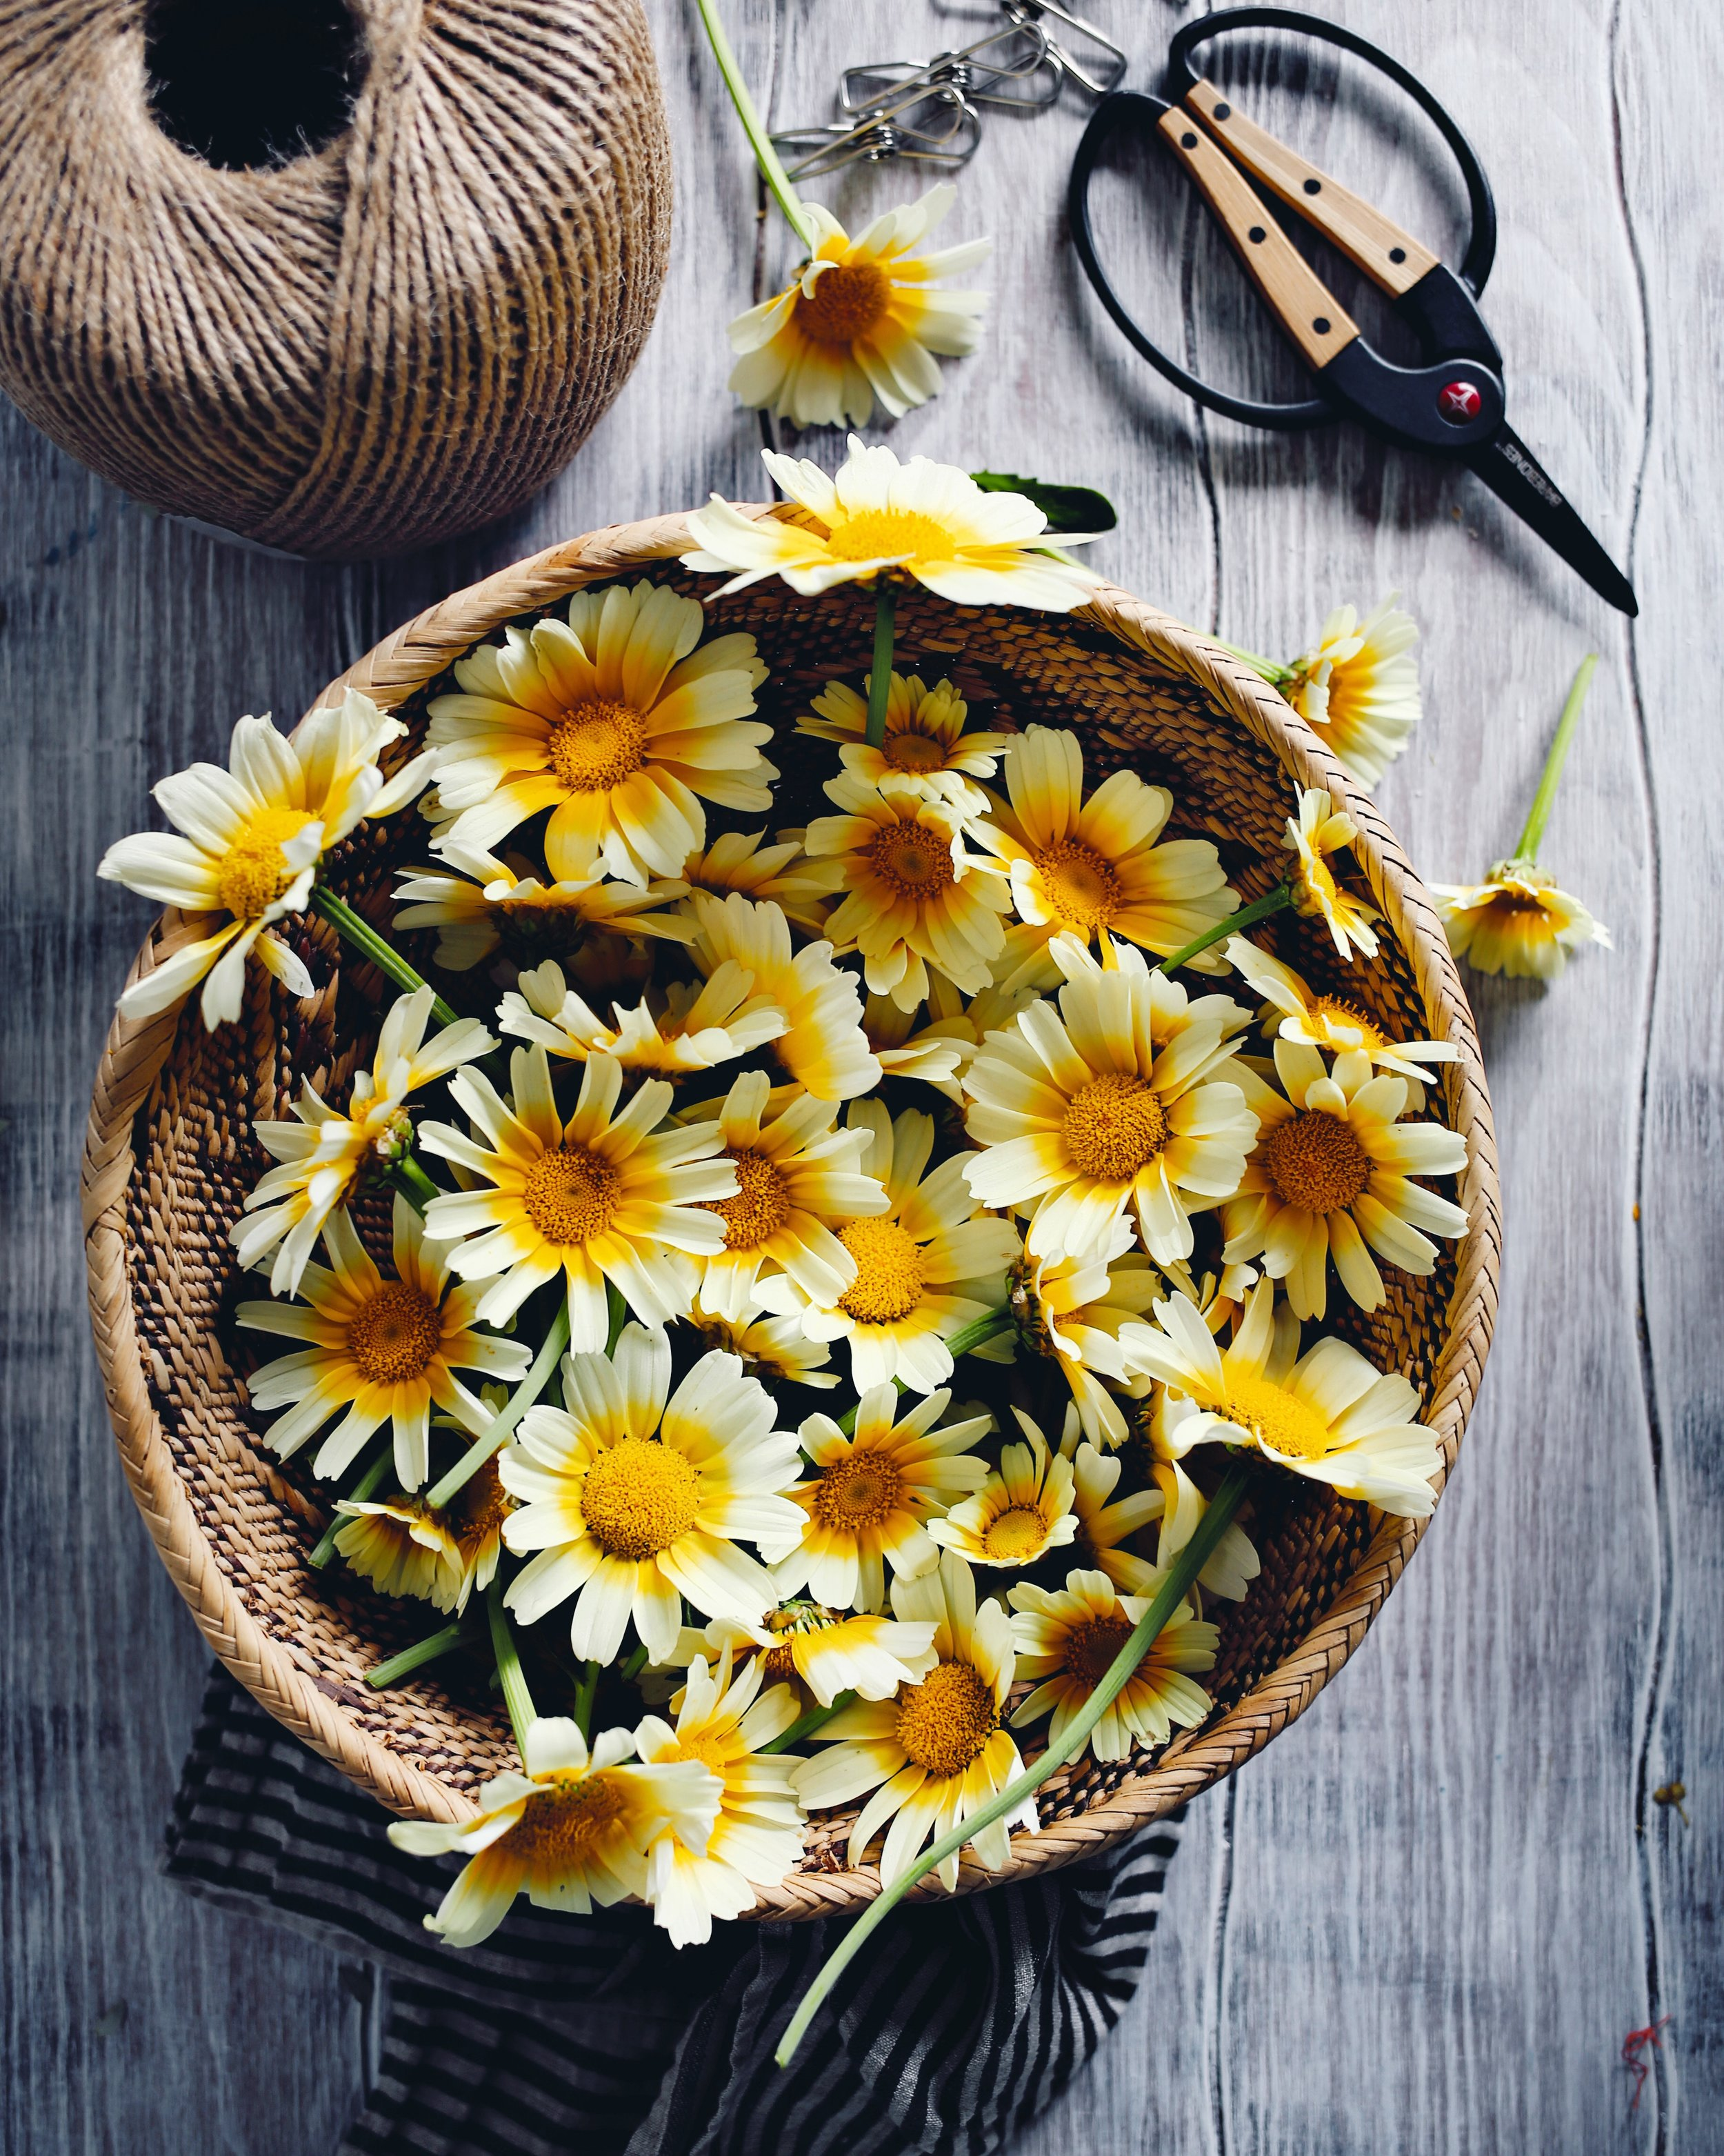 02__chrysanthemum syrup | Photo Credit Kristin Guy.jpg